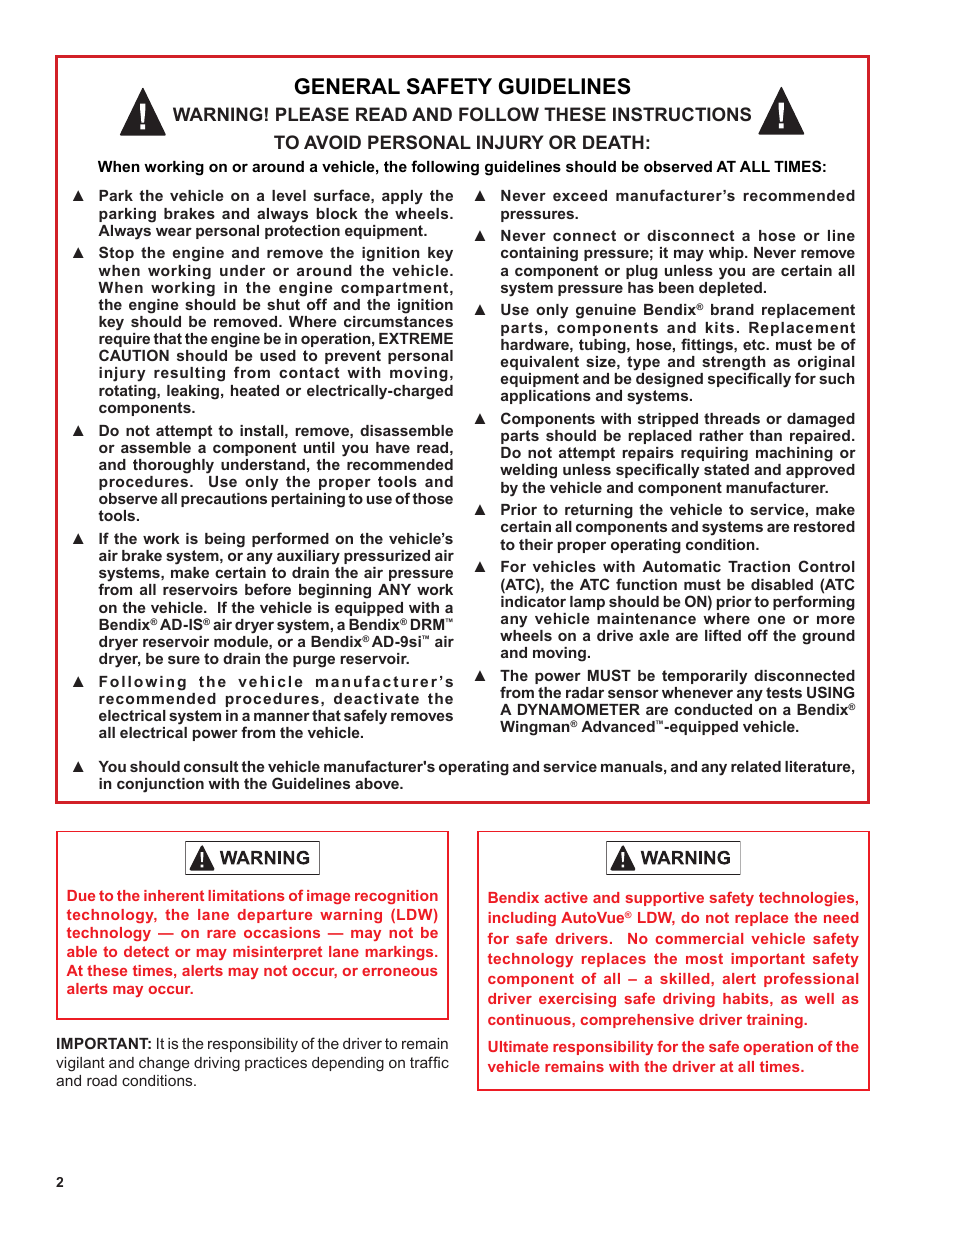 General safety guidelines | Bendix Commercial Vehicle